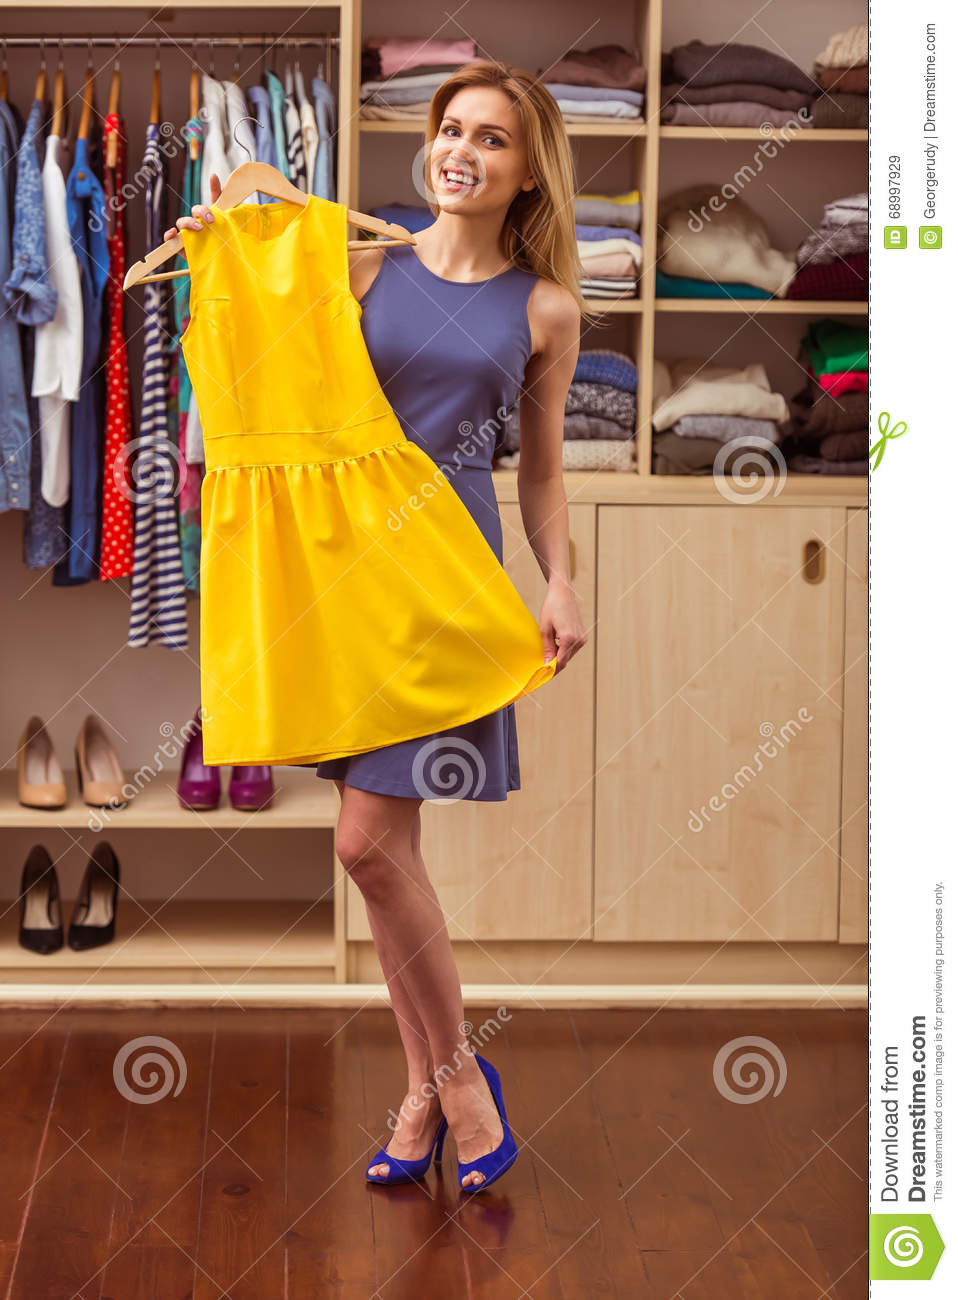 Girl in a dressing room stock image. Image of happy, fashion - 68997929